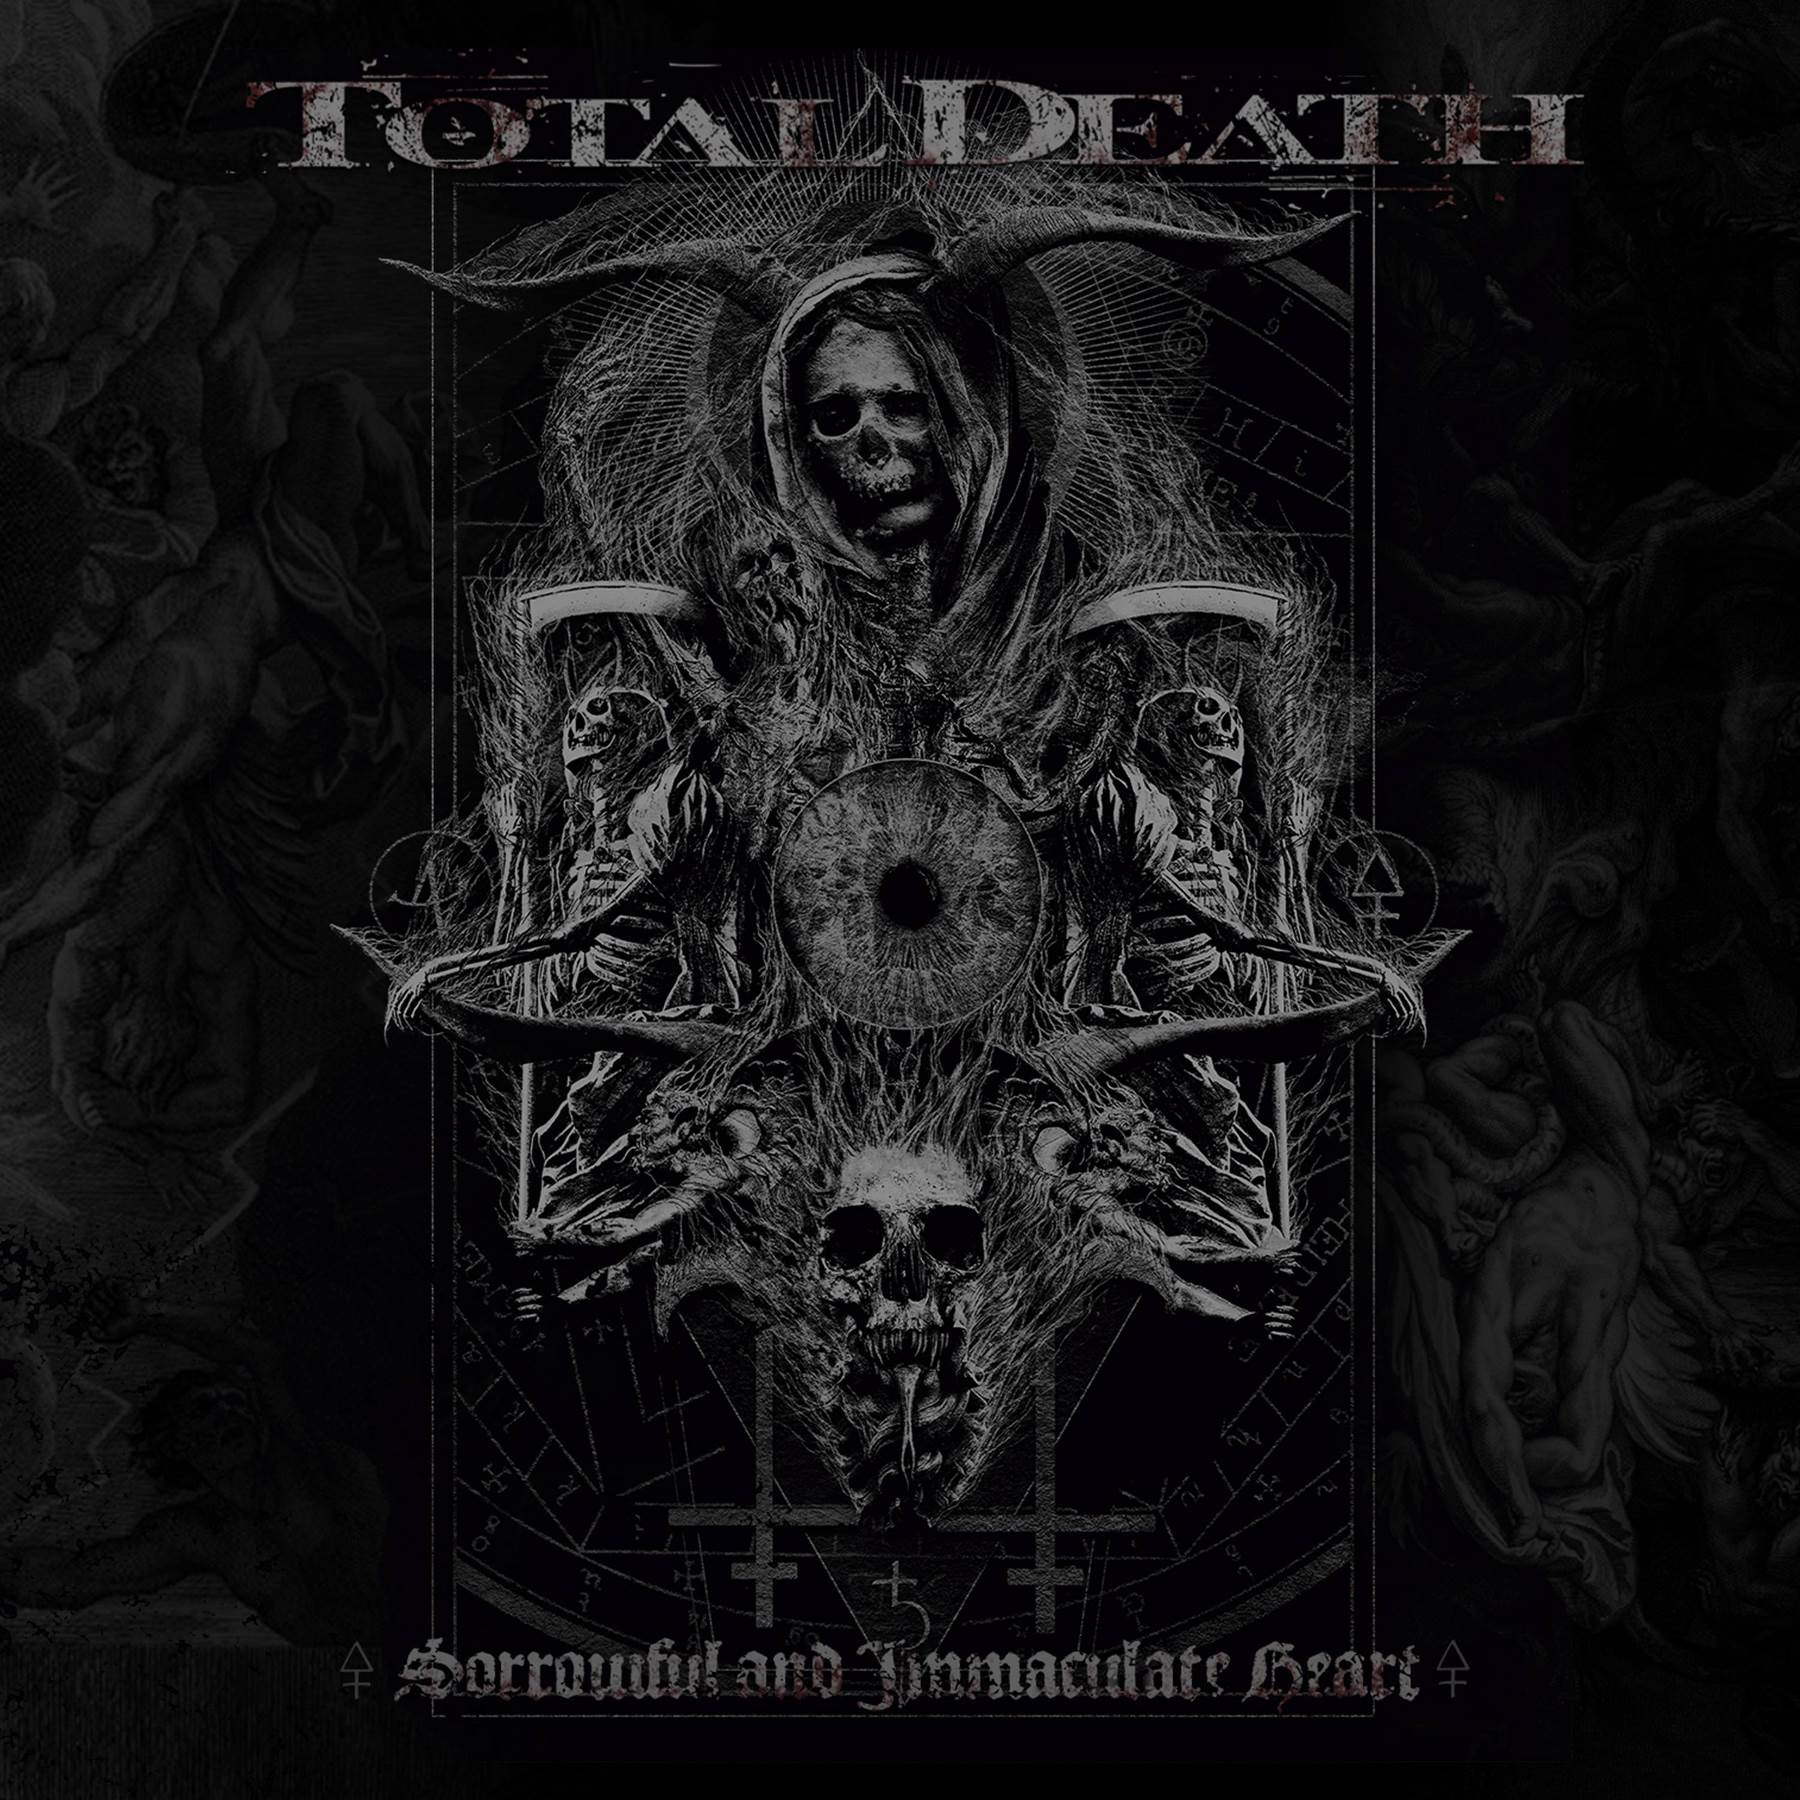 Total Death - Sorrowful and Inmaculate Heart